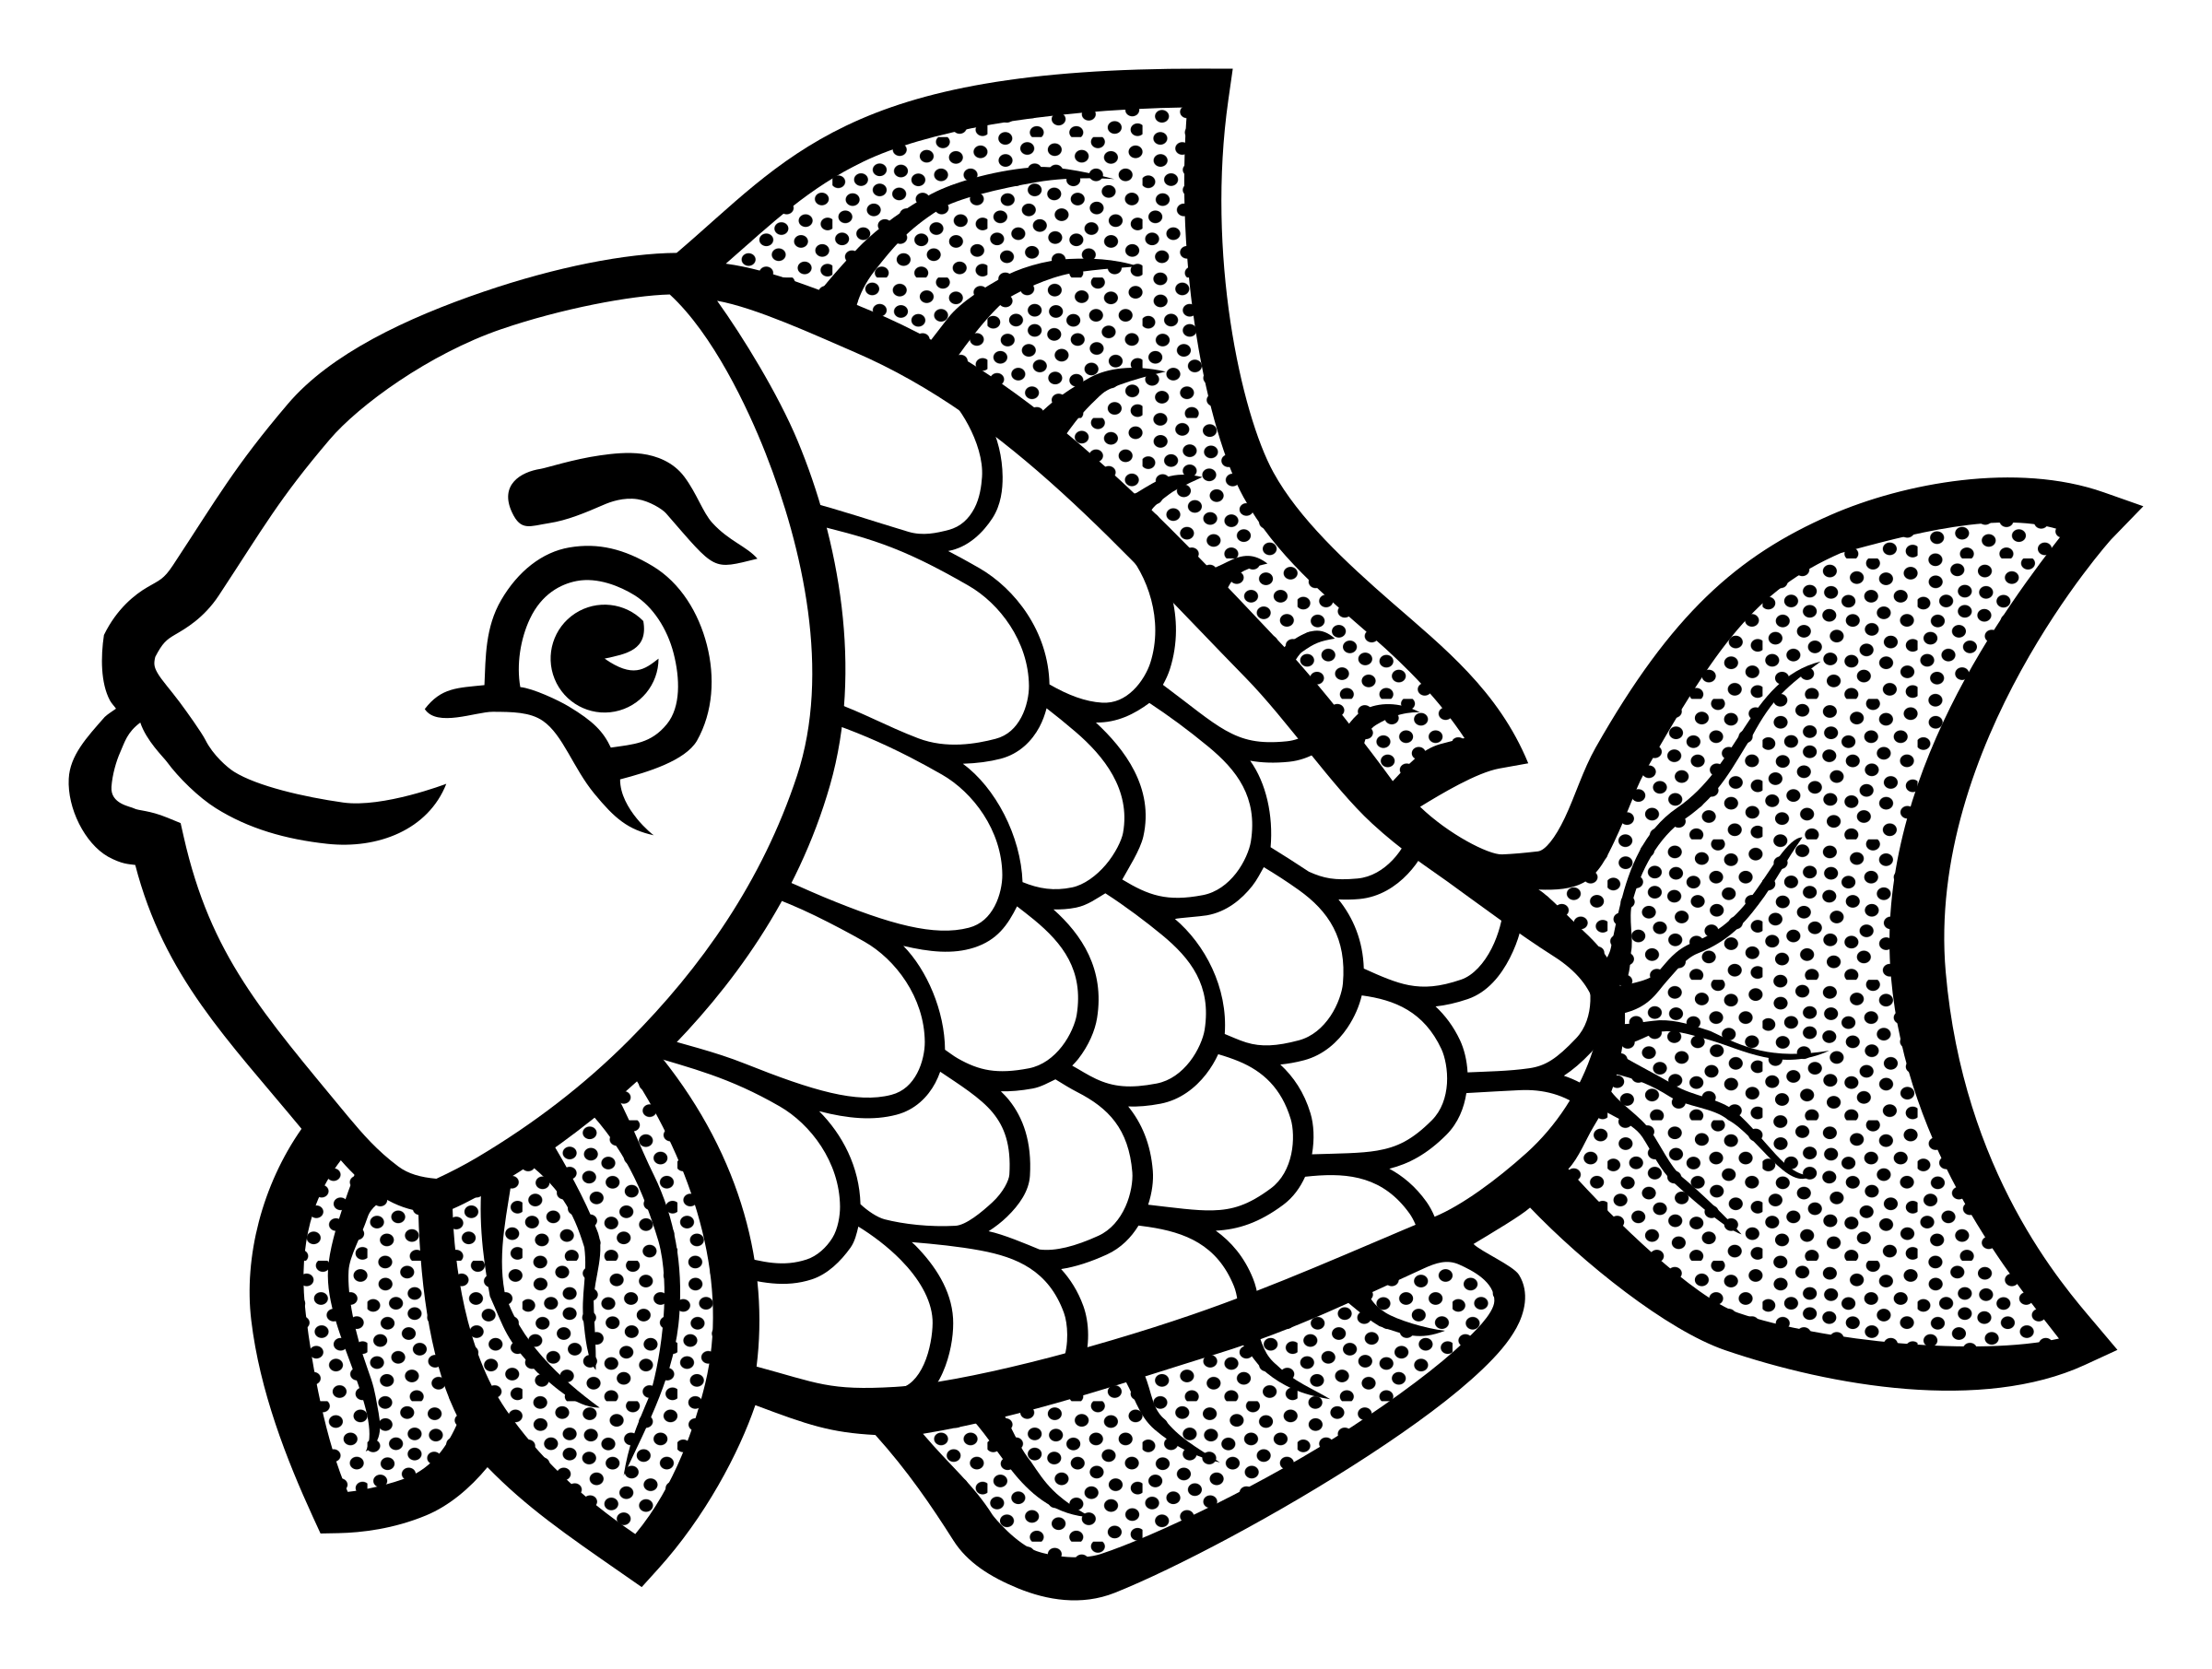 Fish on line clipart graphic freeuse library Professional Fish Line Art Lineart Icons PNG F #2348 | Maries ... graphic freeuse library